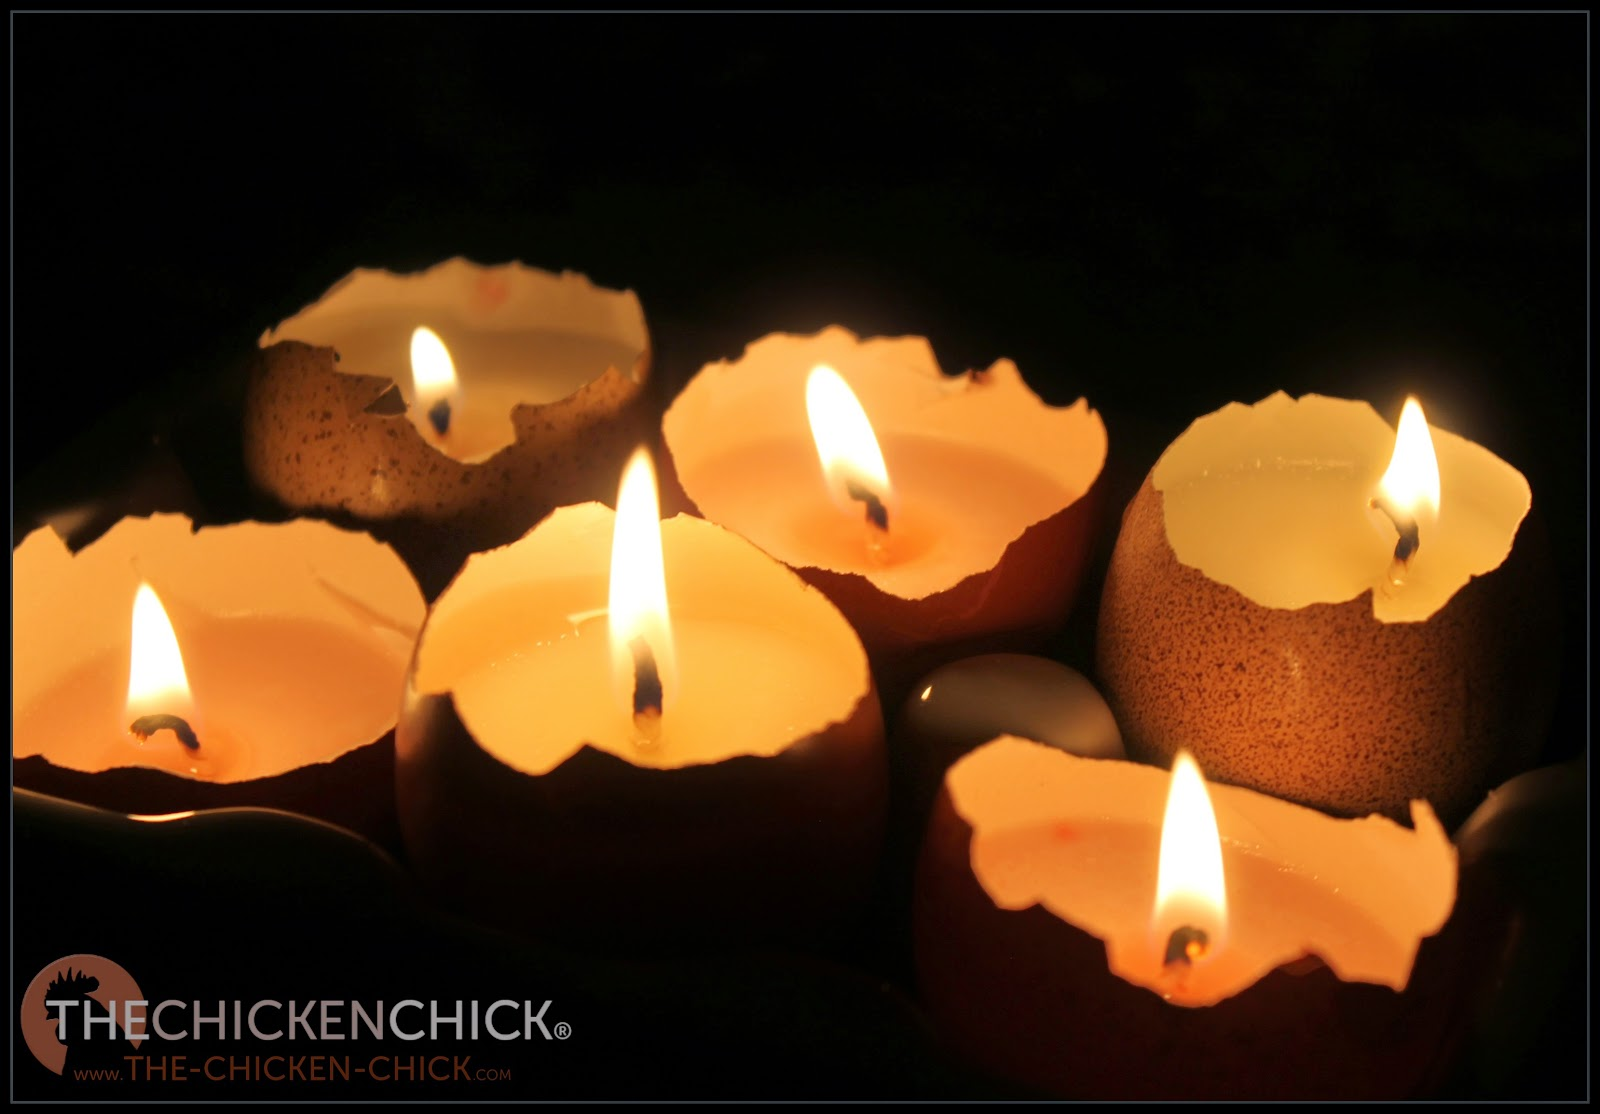 Eggshell Candles The Chicken Chick 174